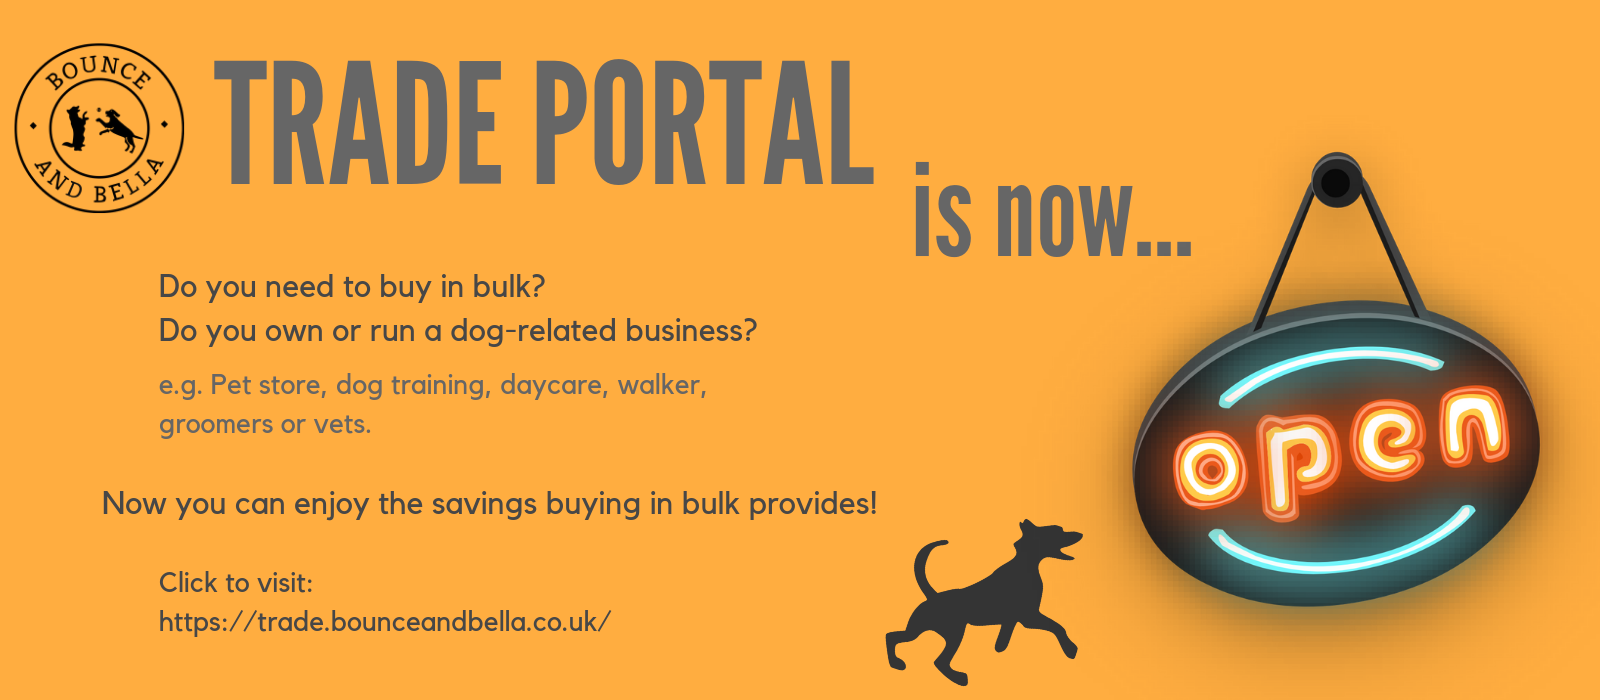 Bounce and Bella's trade portal is now open. Do you need to buy in bulk? Do you own or run a dog-related business? e.g. Pet store, dog training, daycare, walker, groomers or vets. Now you can enjoy the savings buying in bulk provides! Click to visit: https://trade.bounceandbella.co.uk/